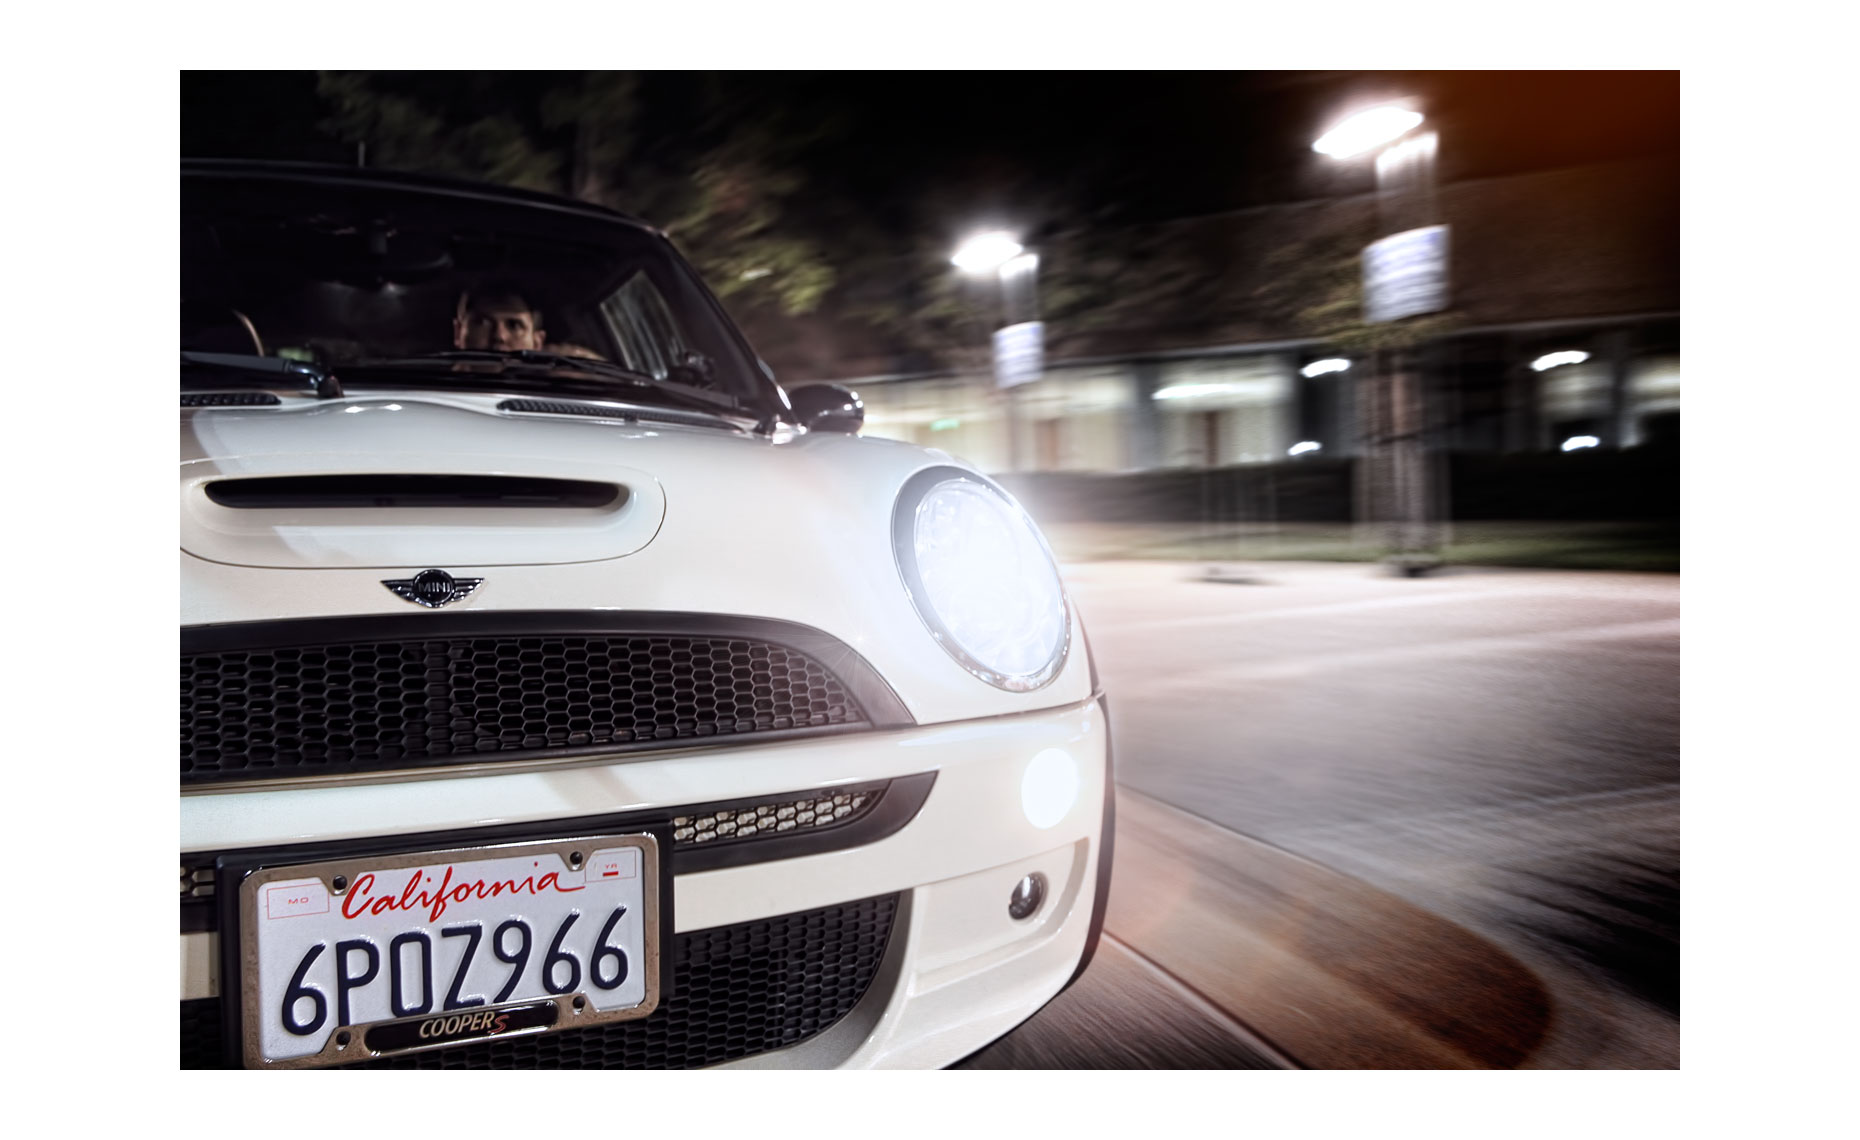 Mini Cooper S Driving   | Neil Fraser Photography | Neil Fraser Photographer